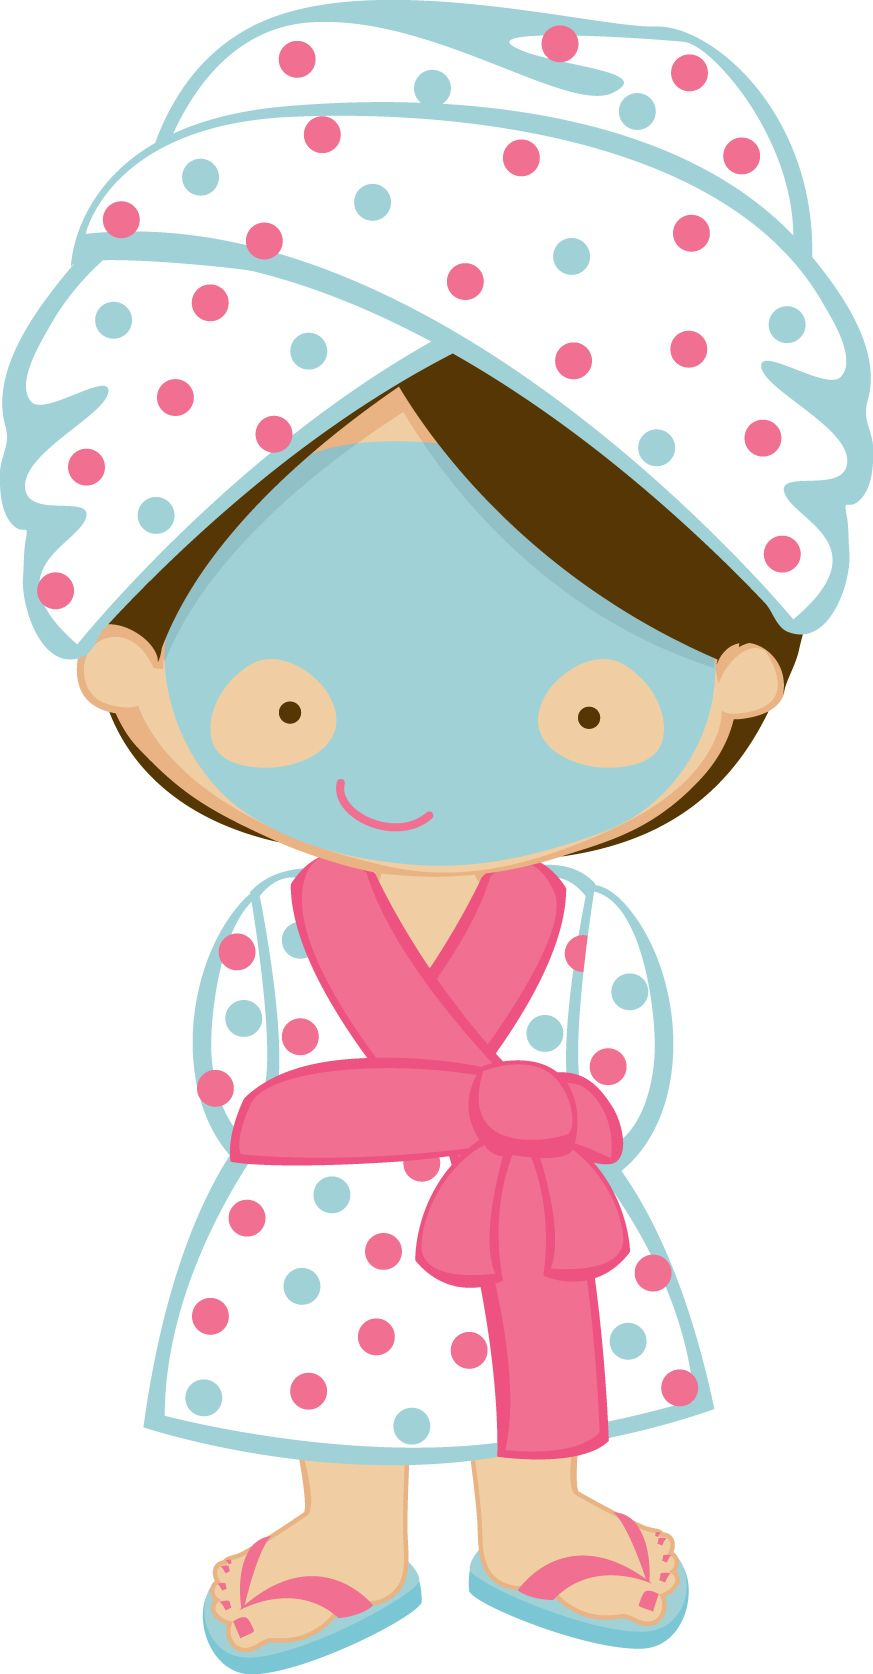 festa do pijama e spa zwd spagirl 1 jpg minus tag pinterest rh pinterest com spa party clipart free